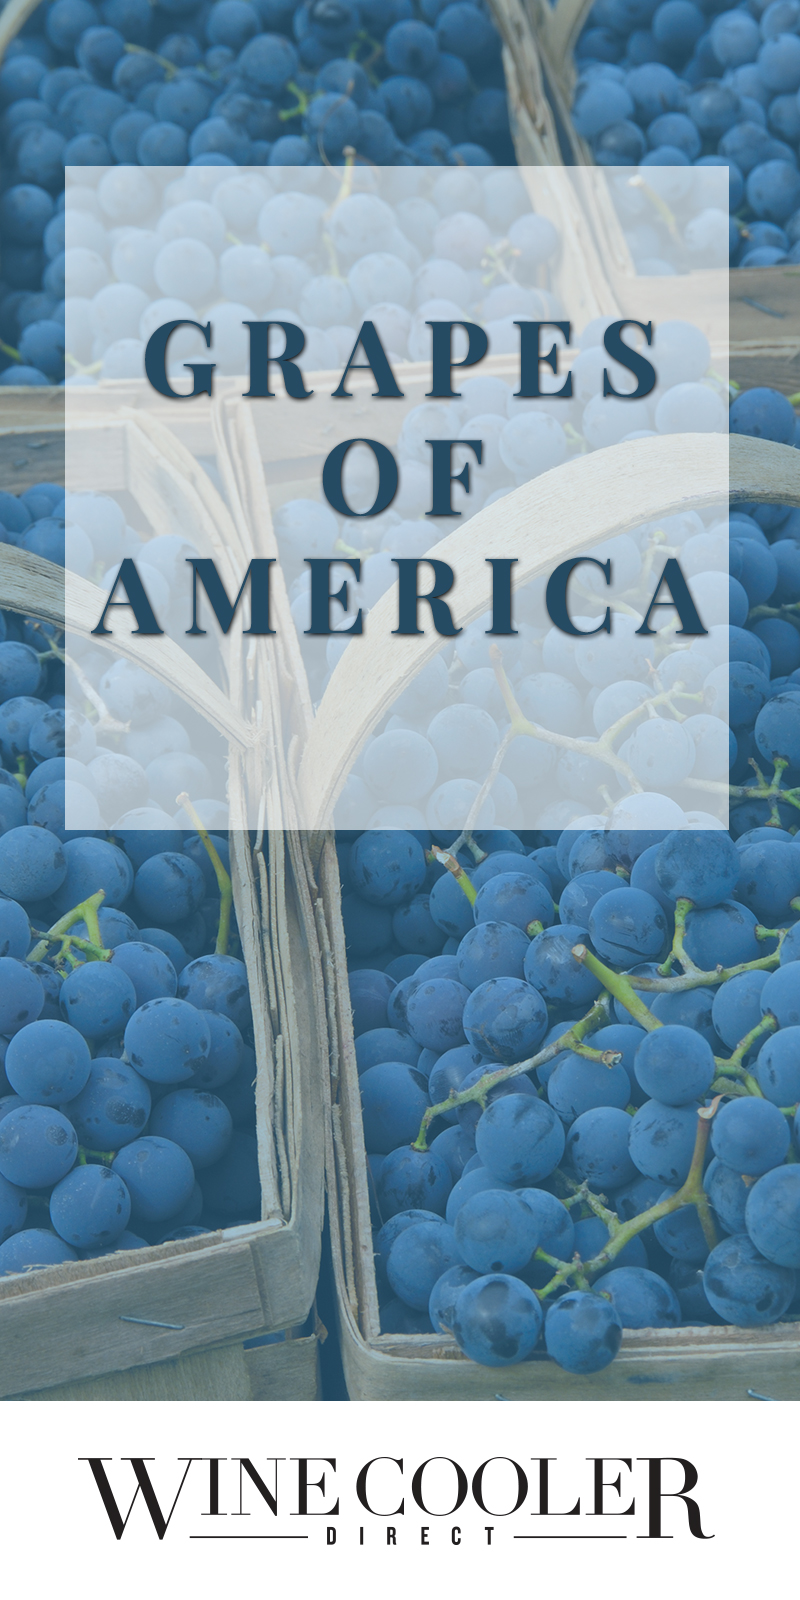 Grapes of America